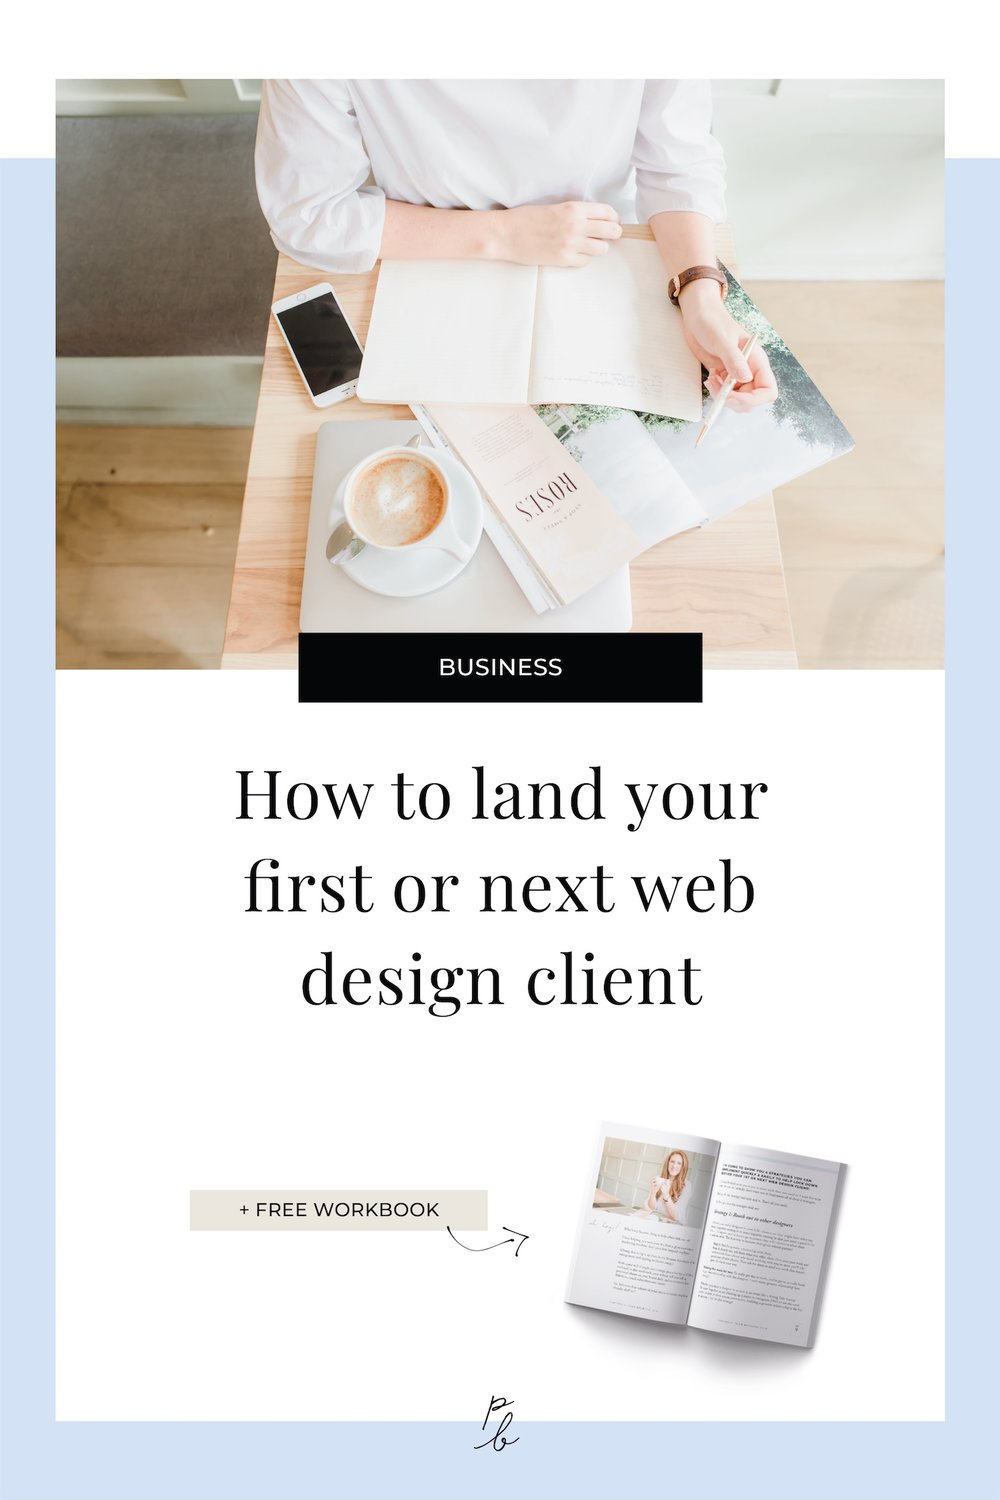 How to land your first or next web design client.jpg